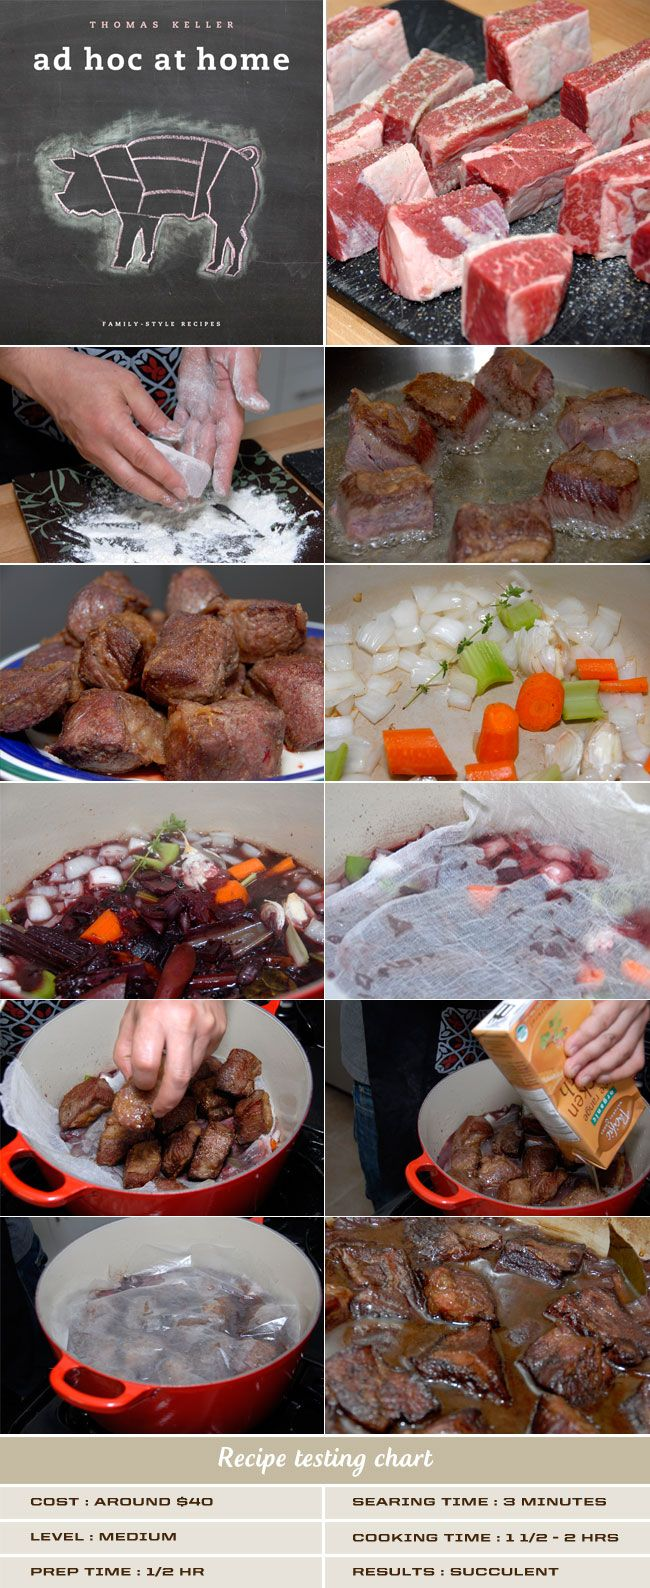 Braised beef short ribs recipe by thomas keller mondo dinner braised short ribs recipe by thomas keller ad hoc forumfinder Image collections